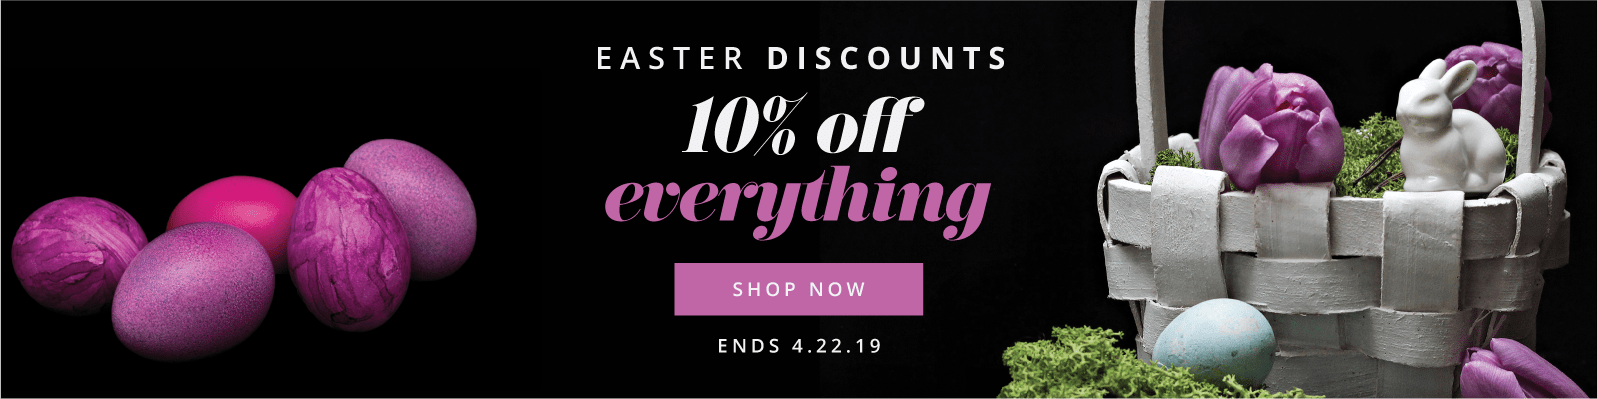 Easter Discounts 10% off everything Shop Now Ends 4.22.19